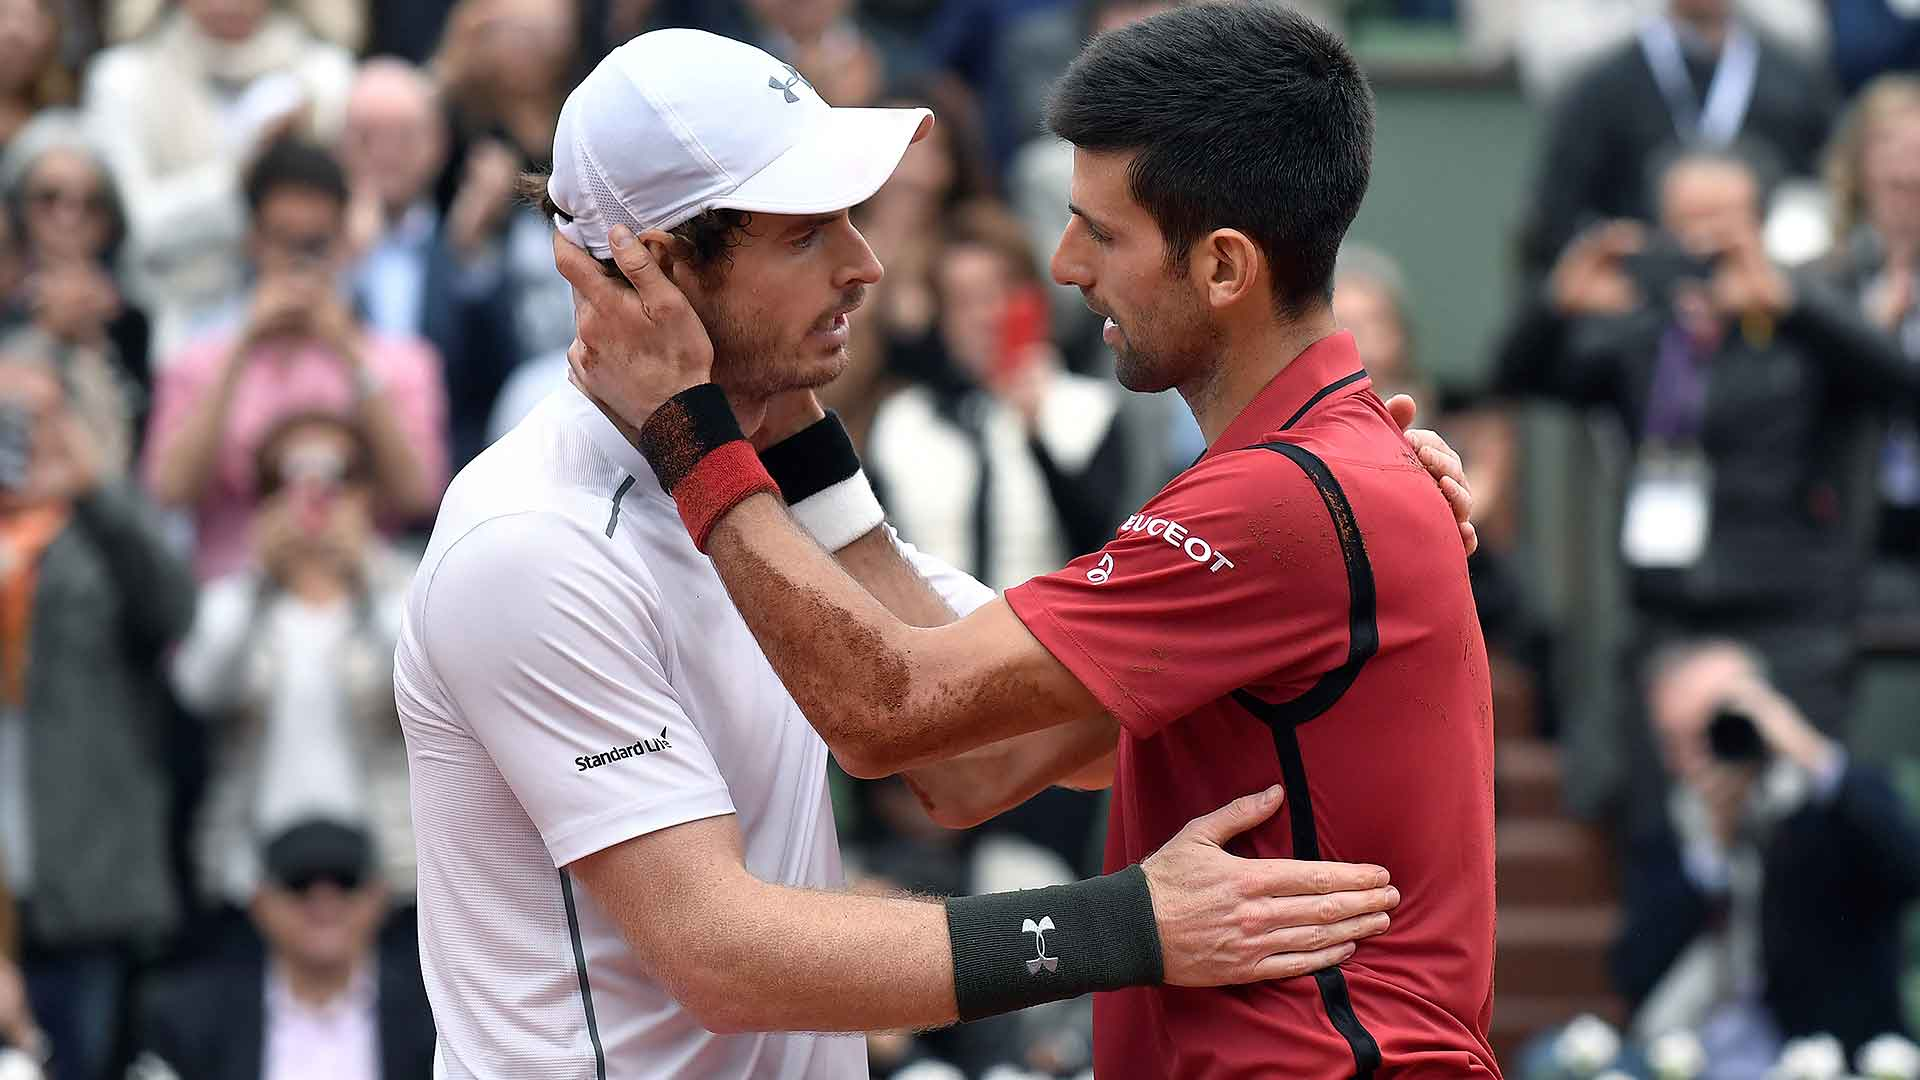 <a href='/en/players/andy-murray/mc10/overview'>Andy Murray</a> falls to <a href='/en/players/novak-djokovic/d643/overview'>Novak Djokovic</a> in the pair's seventh Grand Slam final meeting.